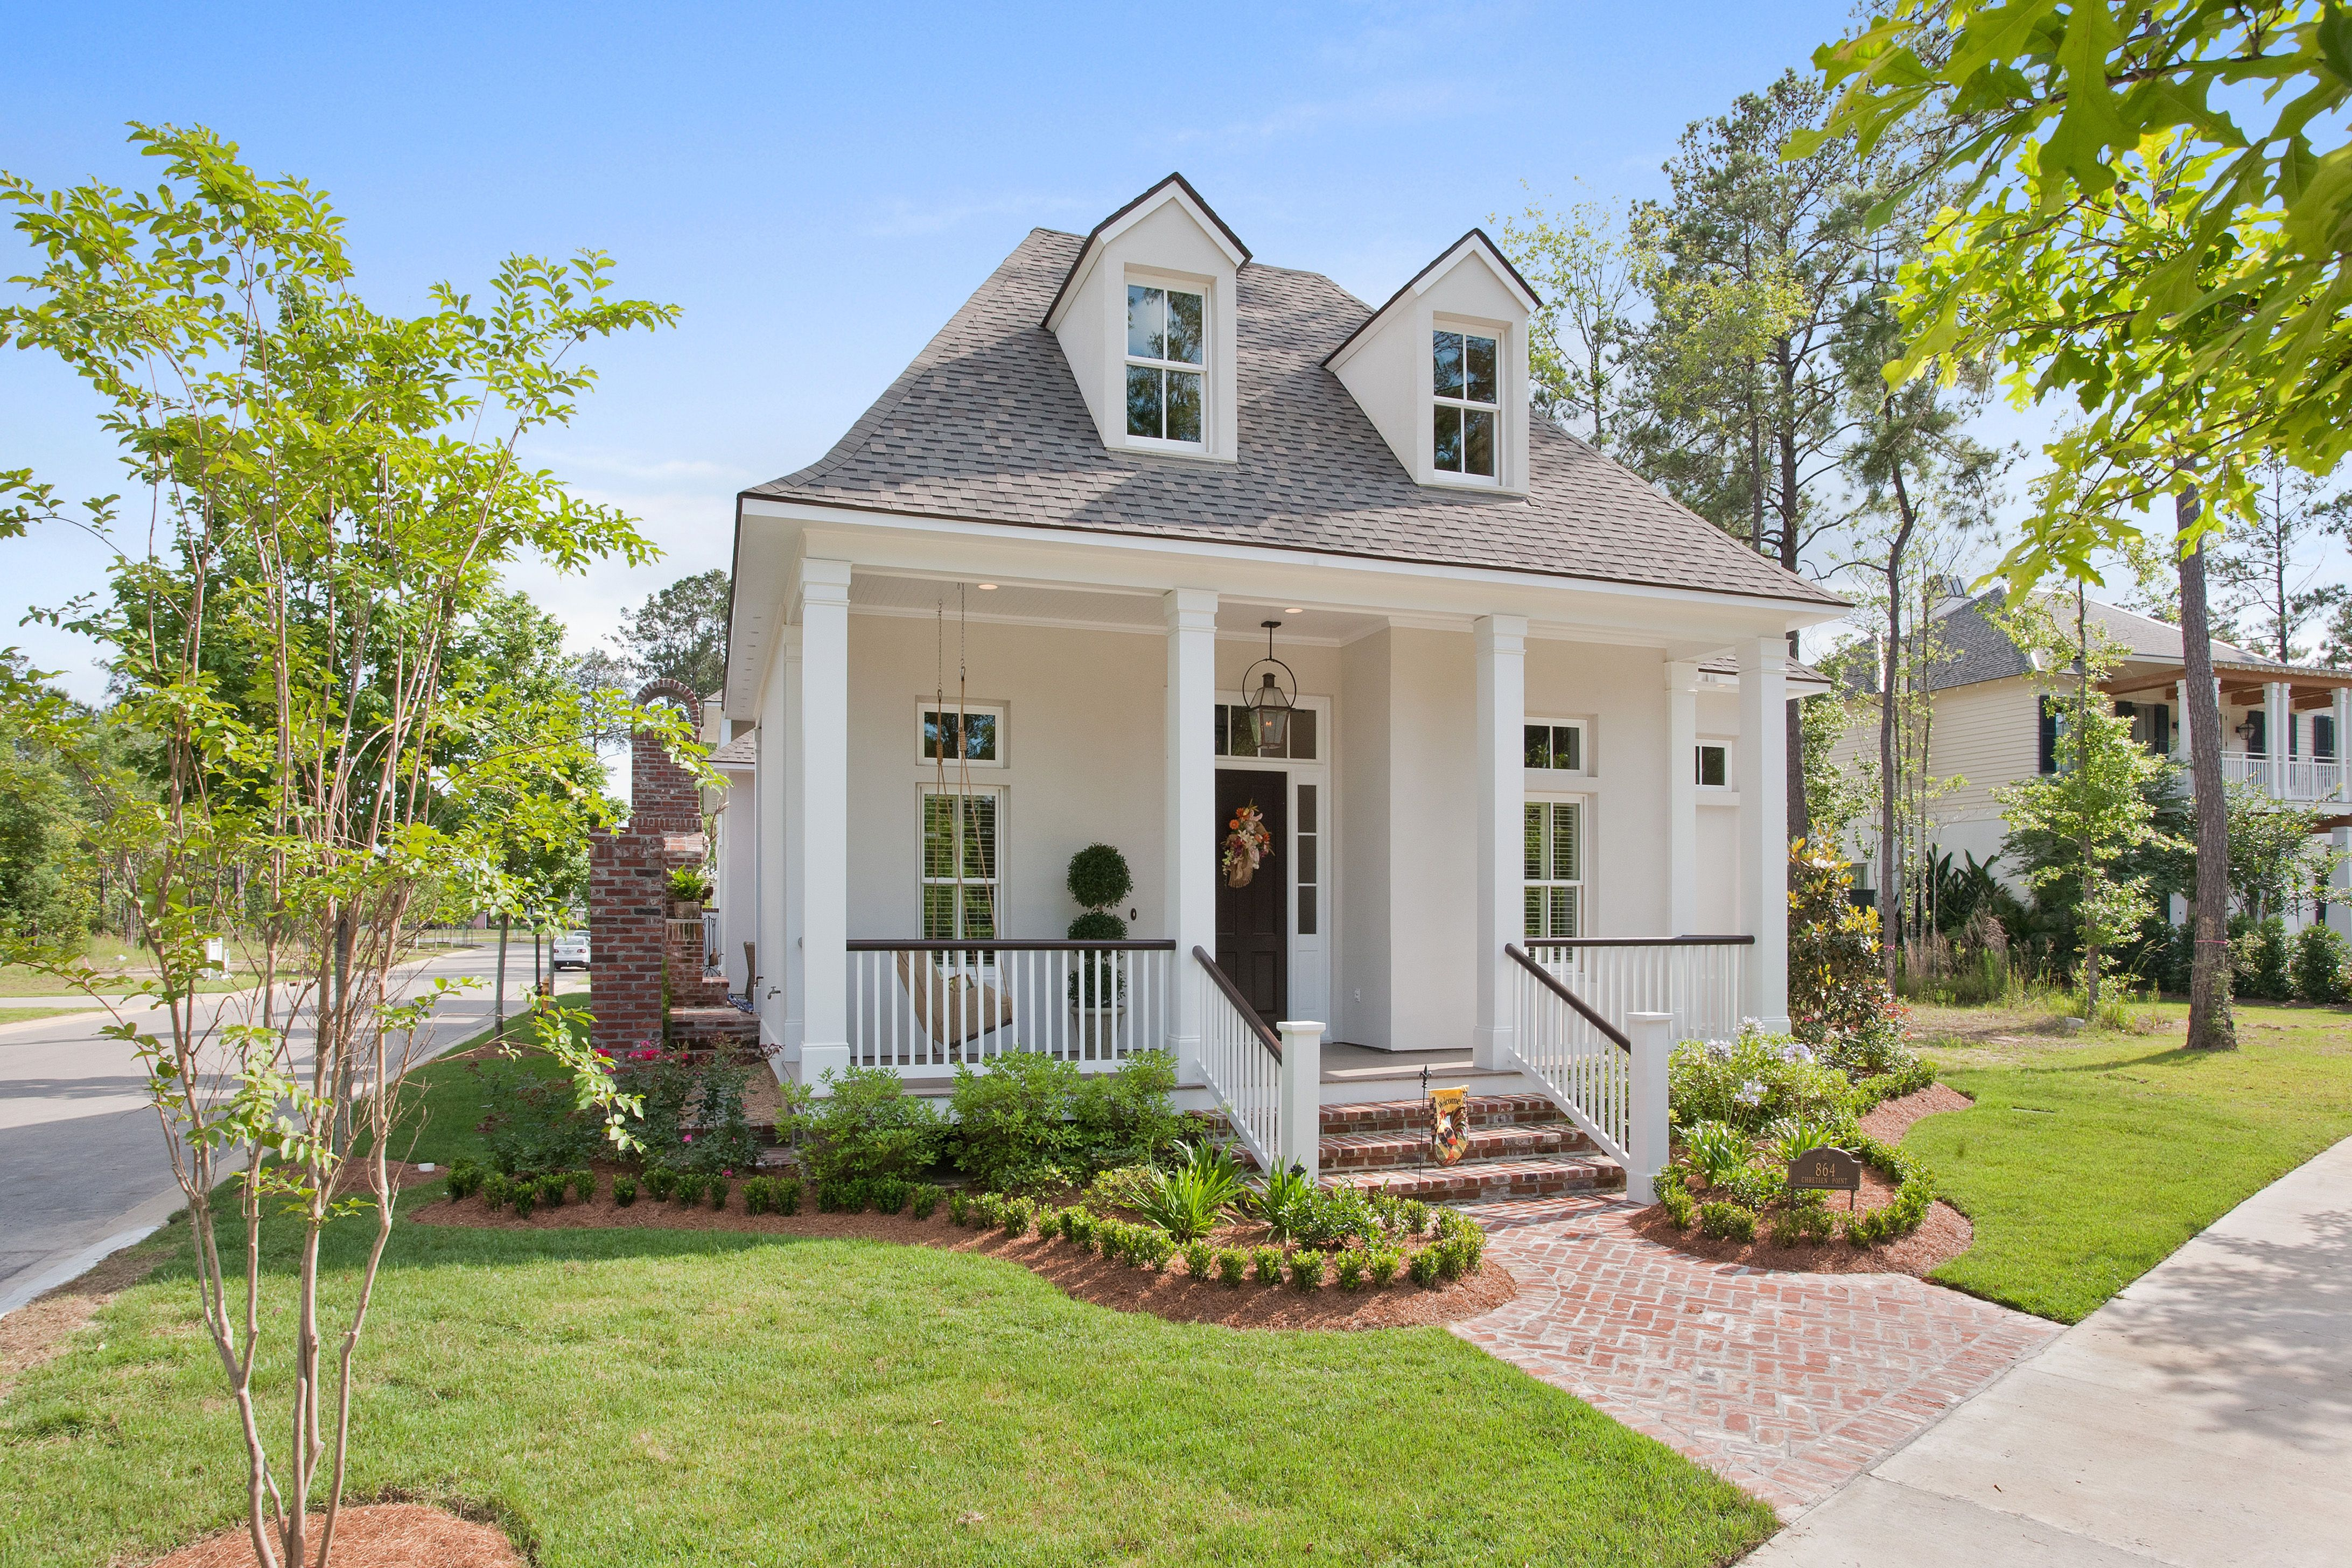 10 Small Town Cottages We D Love To Call Home Small Cottage